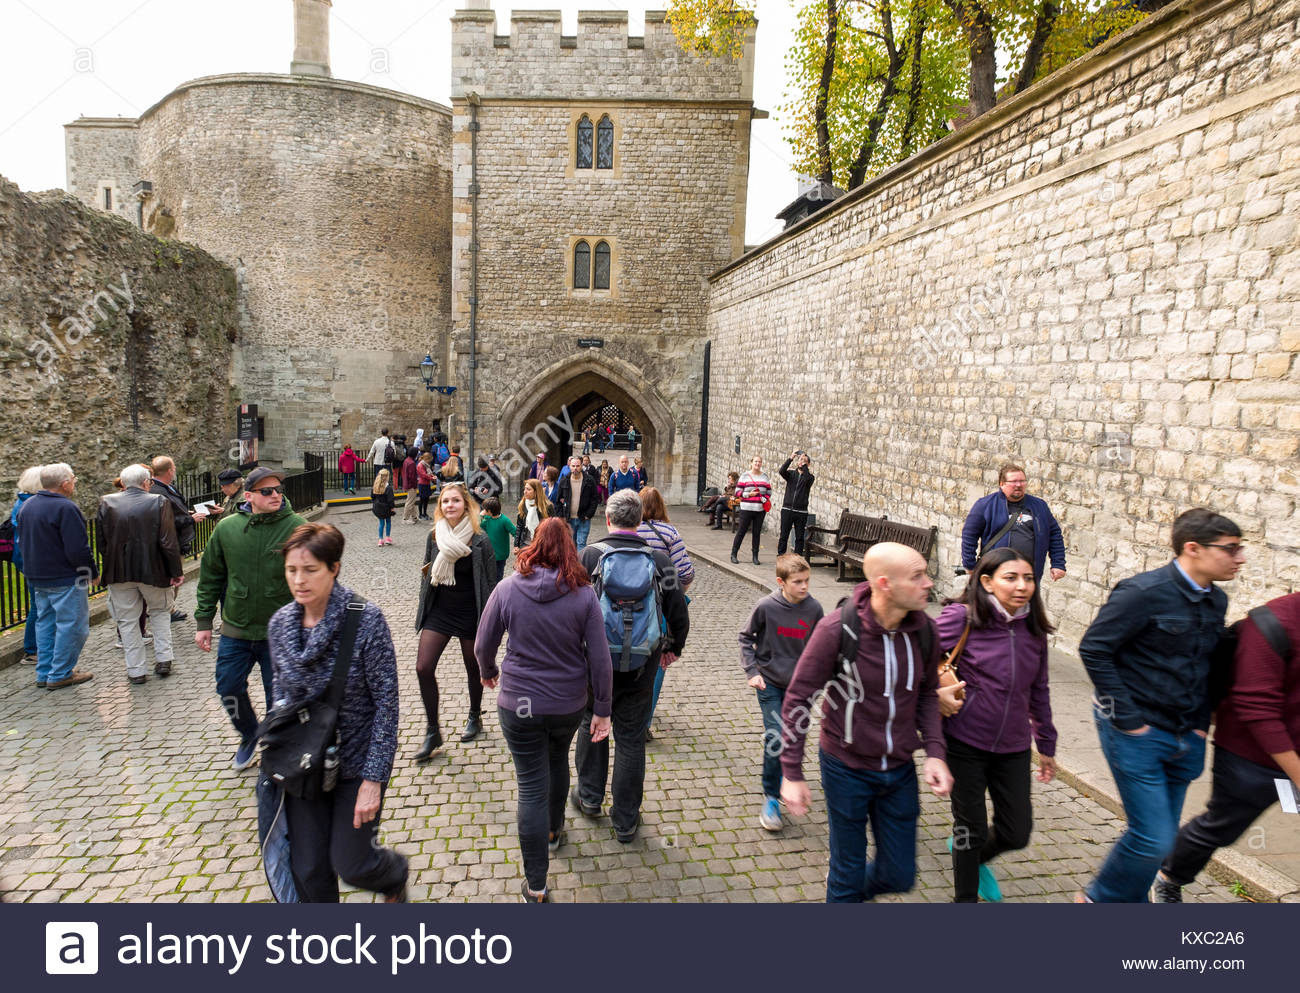 People walking through the Bloody Tower inside the Tower of